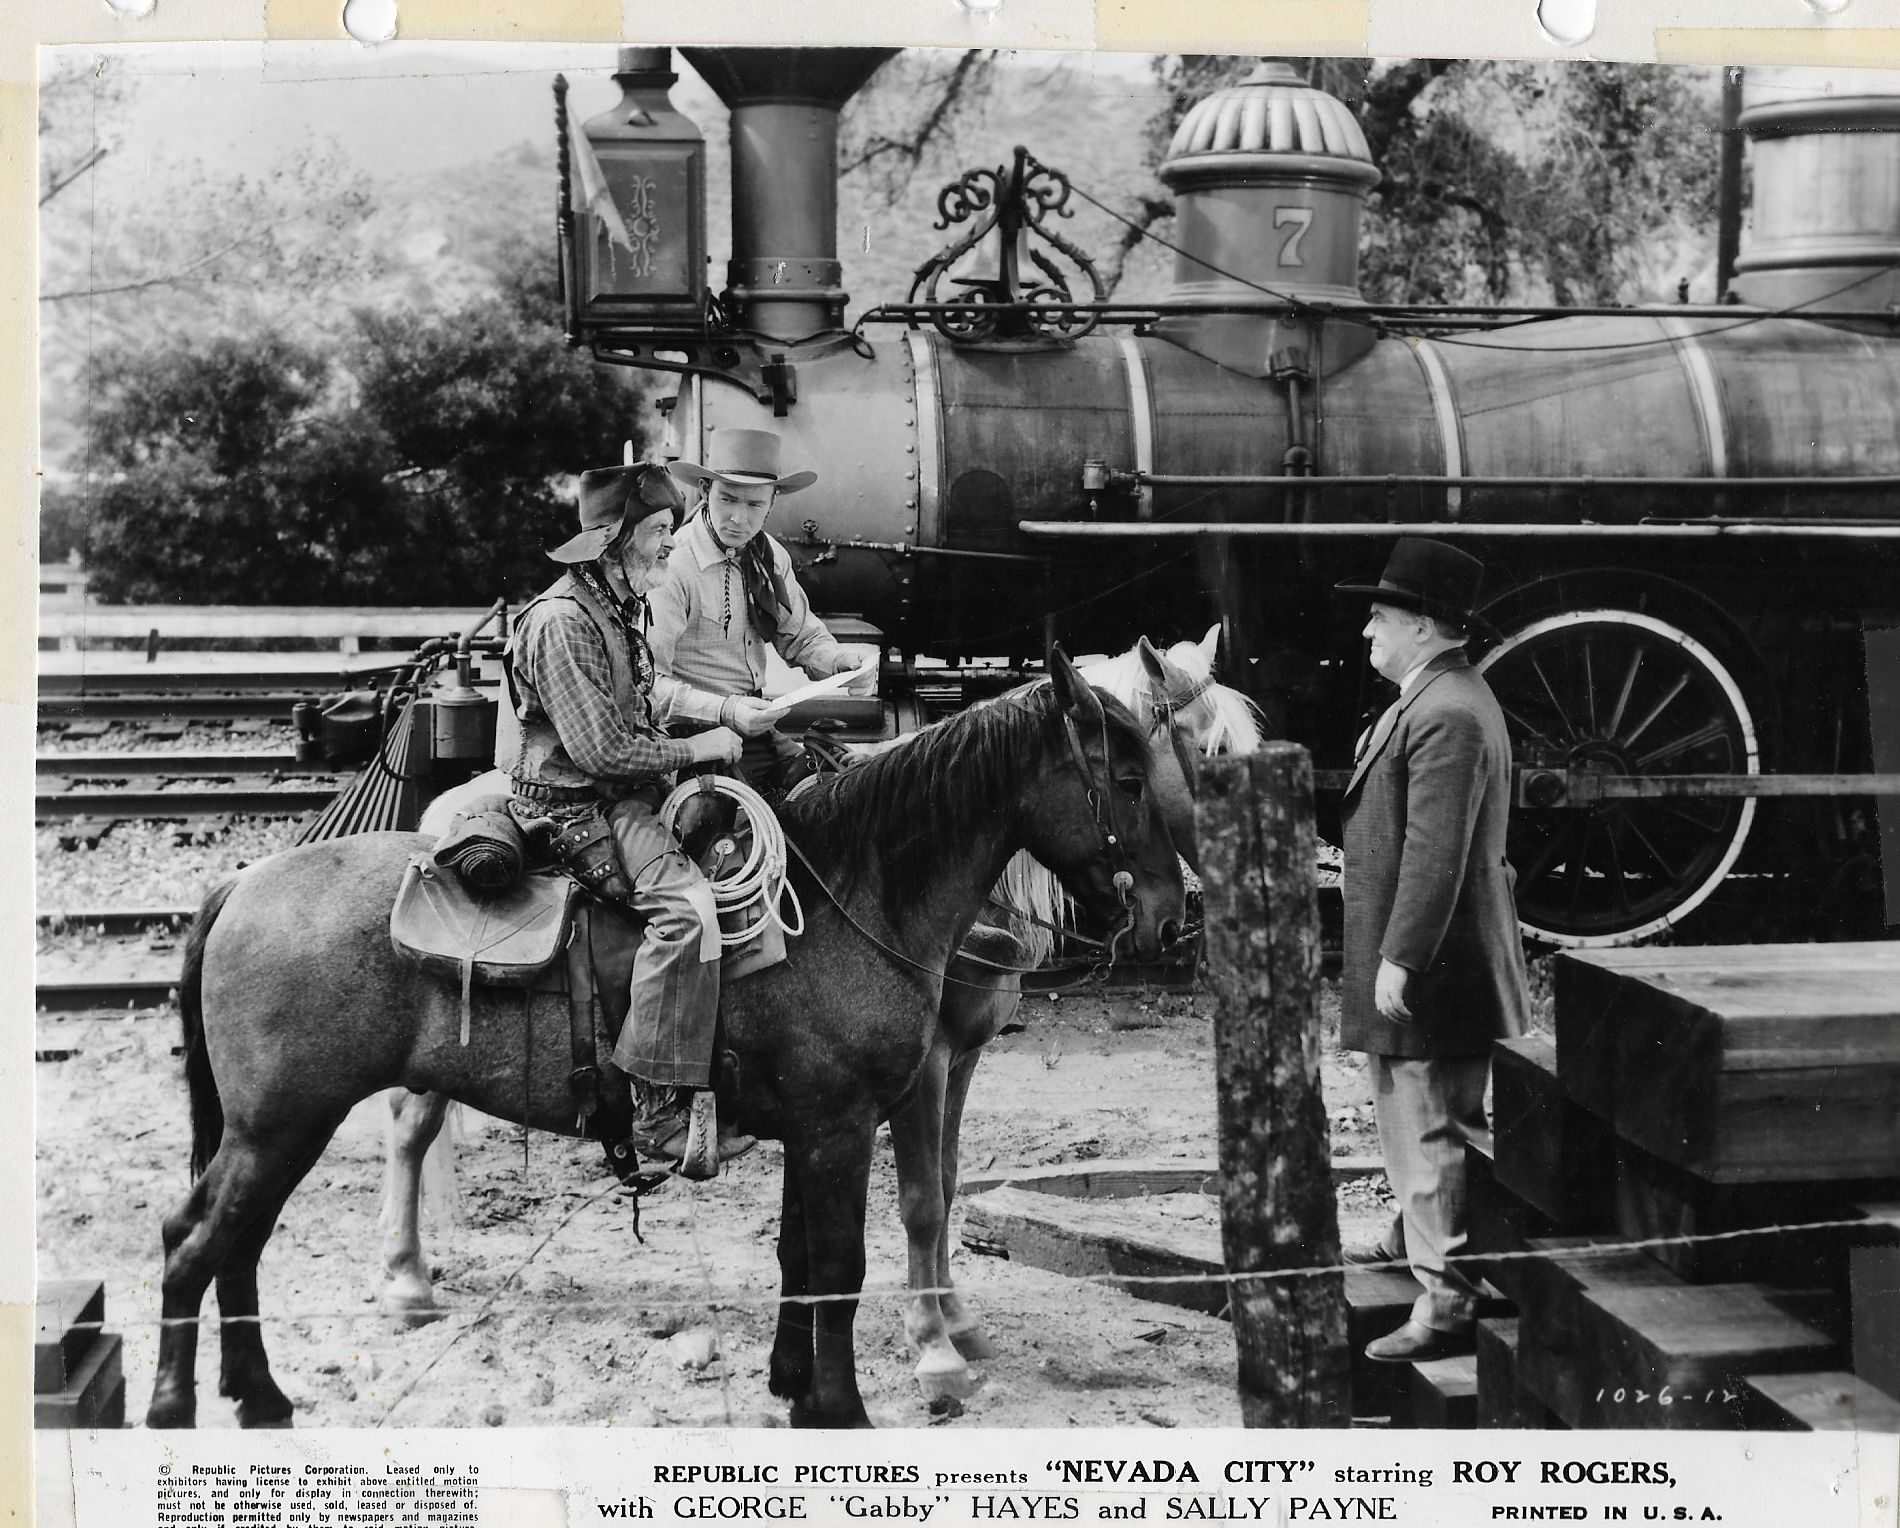 Roy Rogers, Joseph Crehan, George 'Gabby' Hayes, and Trigger in Nevada City (1941)